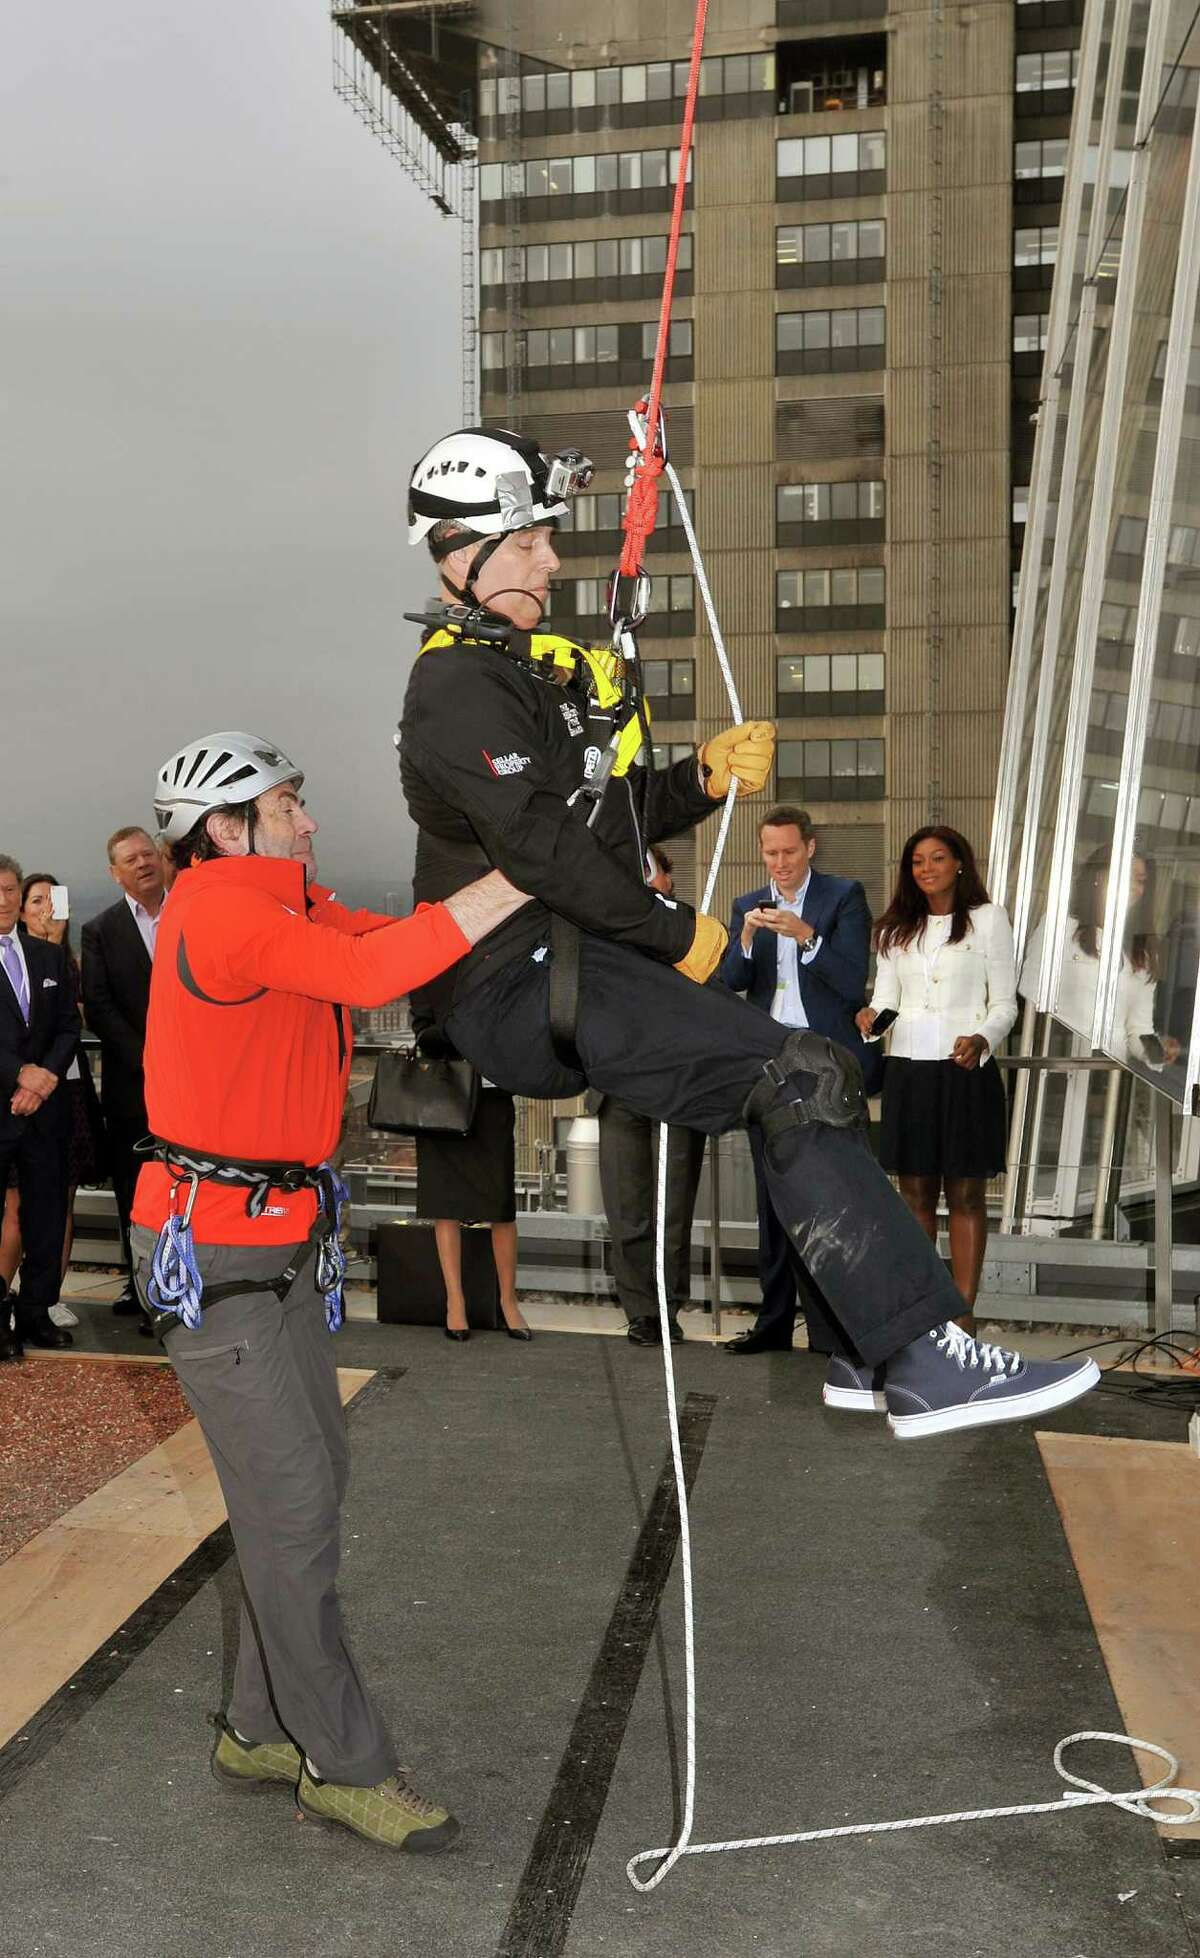 LONDON, UNITED KINGDOM - SEPTEMBER 03: Prince Andrew, Duke of York is helped by Professor David Hopkins of the Outward Bound Trust after he abseiling down the Shard for charity on September 03, 2012 in London, England. The Prince joined with 40 other people in abseiling down the tallest building for the educational charity The Outward Bound Trust and the Royal Marines Charitable Trust Fund.